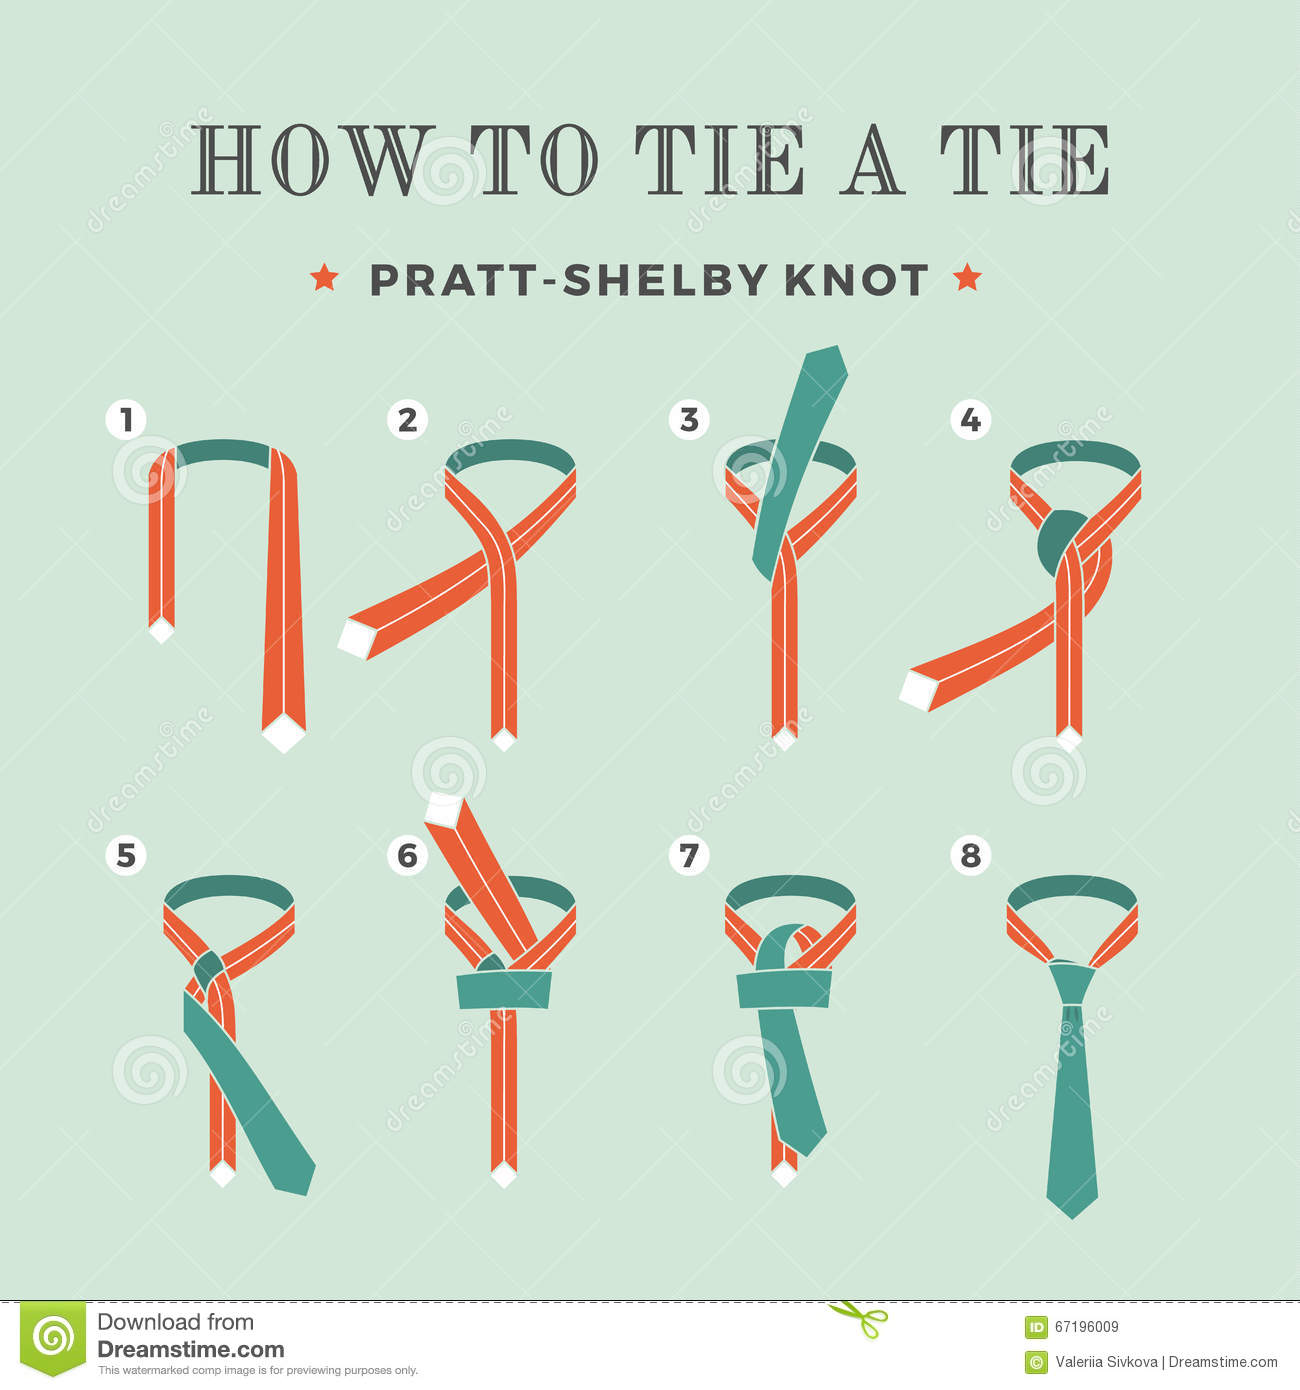 Simple tie knot instructions.